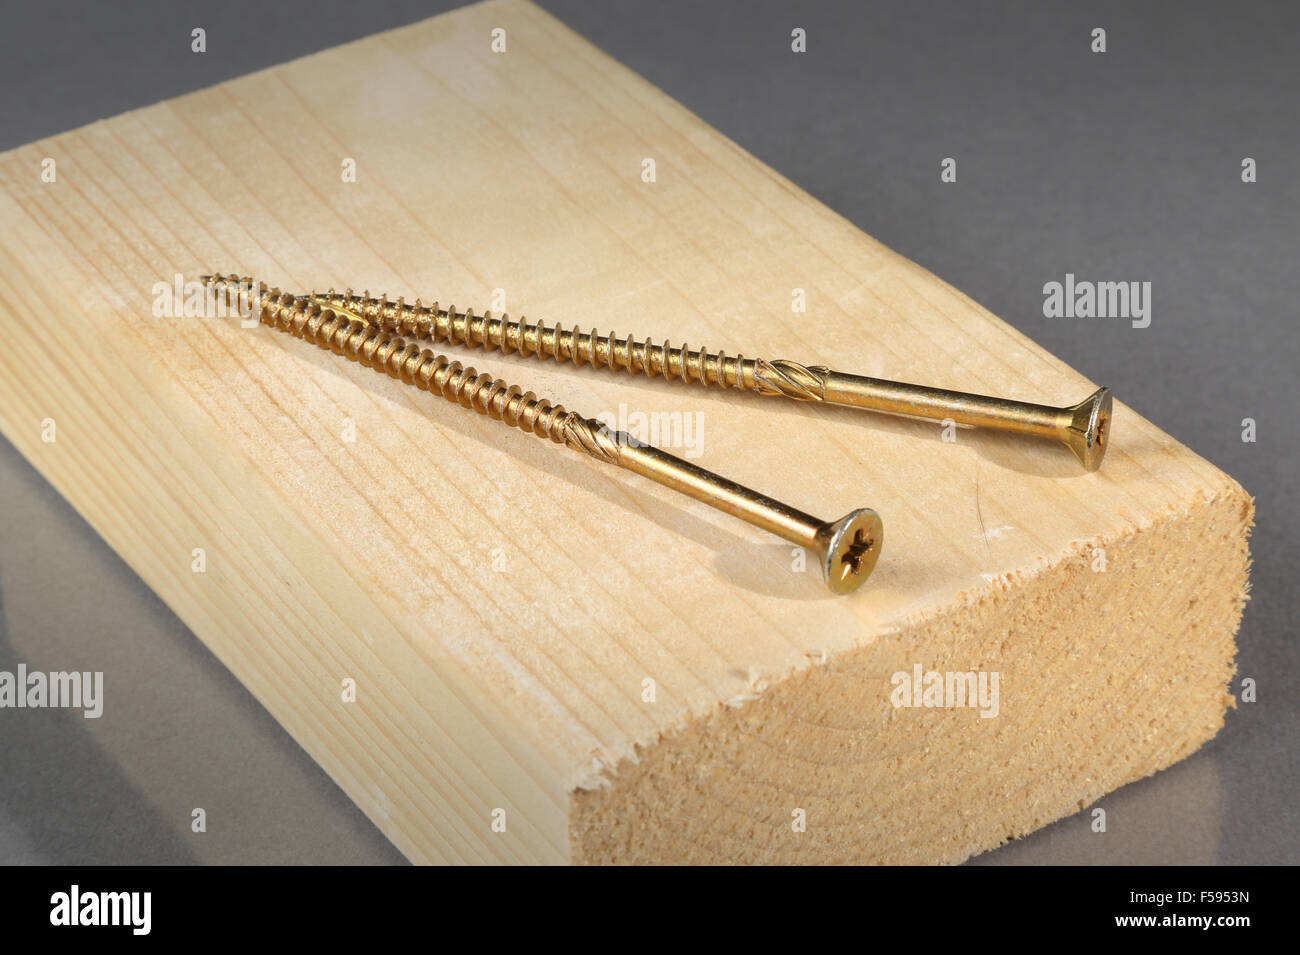 two brass wood screws shown on a block of timber - Stock Image